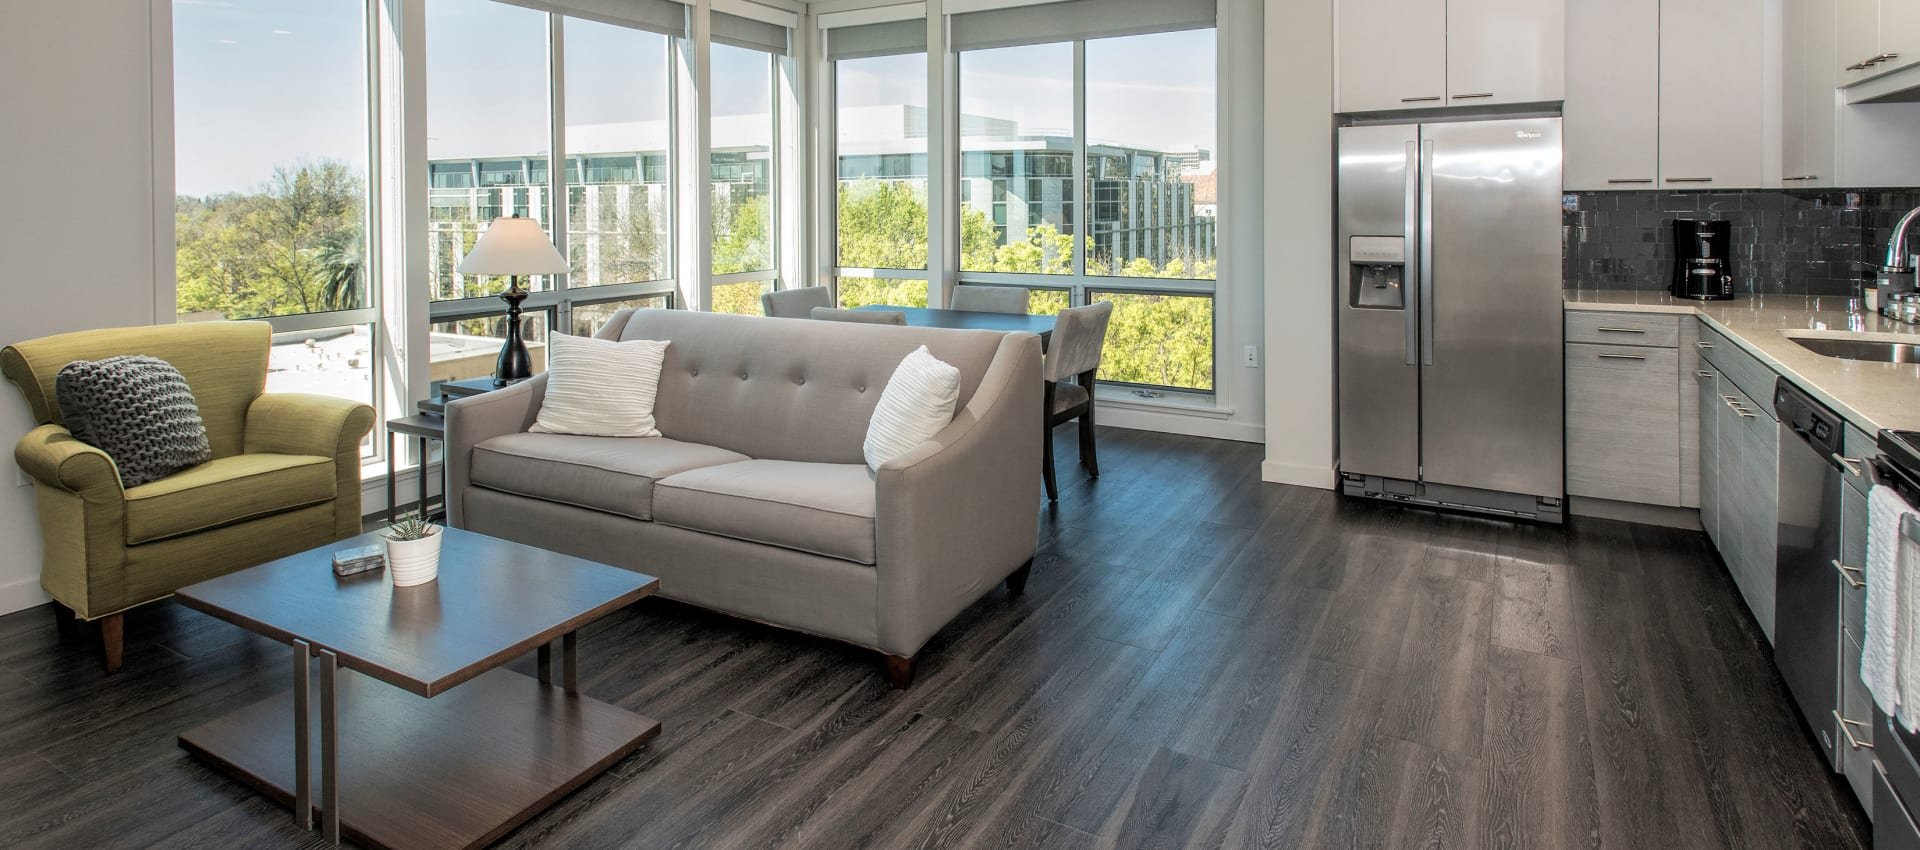 Spacious living room with hardwood floors at EVIVA Midtown in Sacramento, California